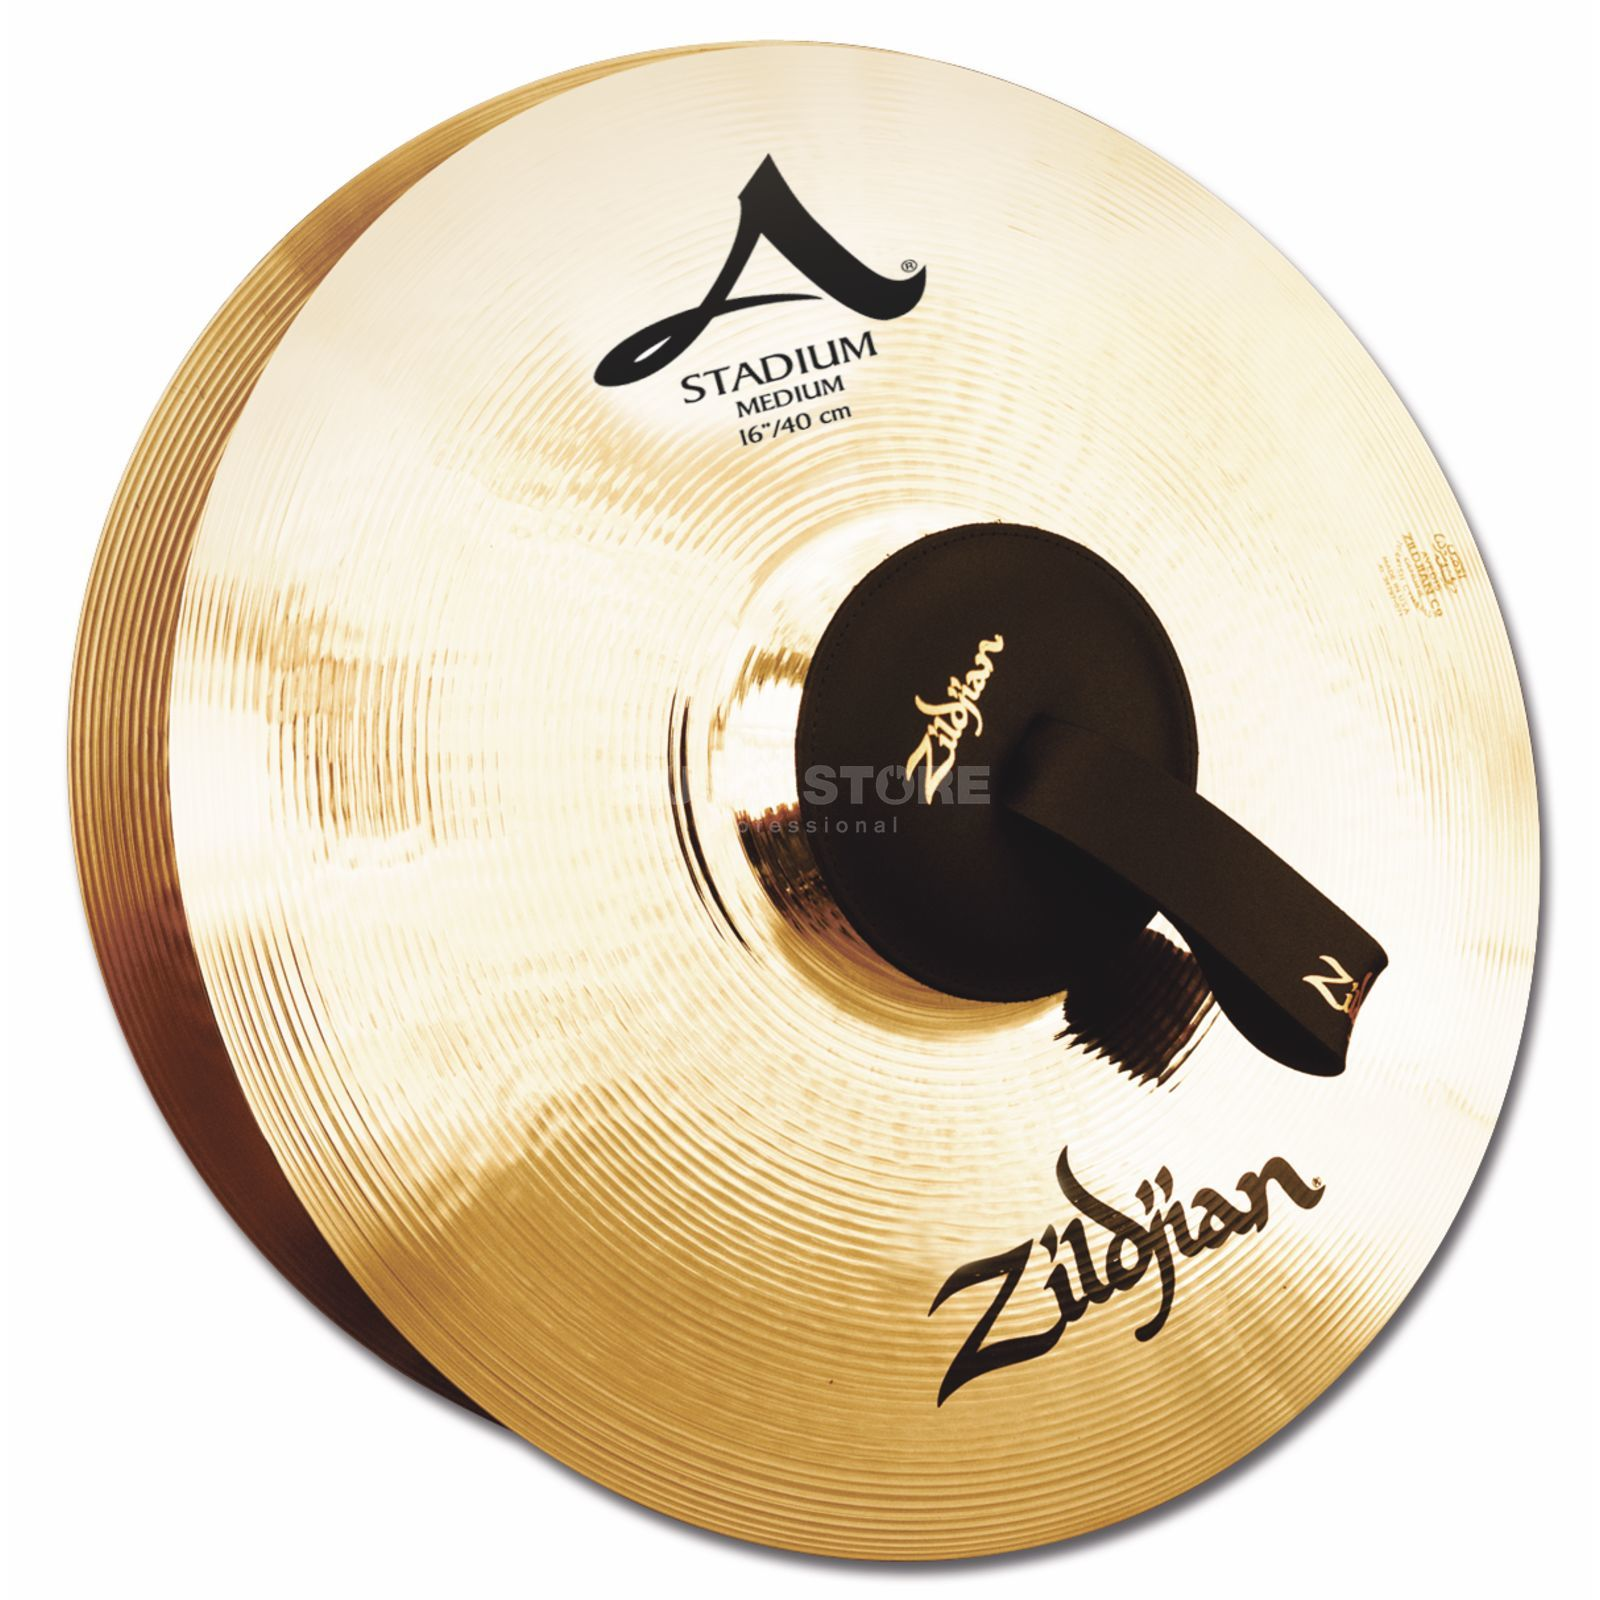 "Zildjian A' Stadium Marching Cymbals, 16"", Medium, Pair Produktbillede"